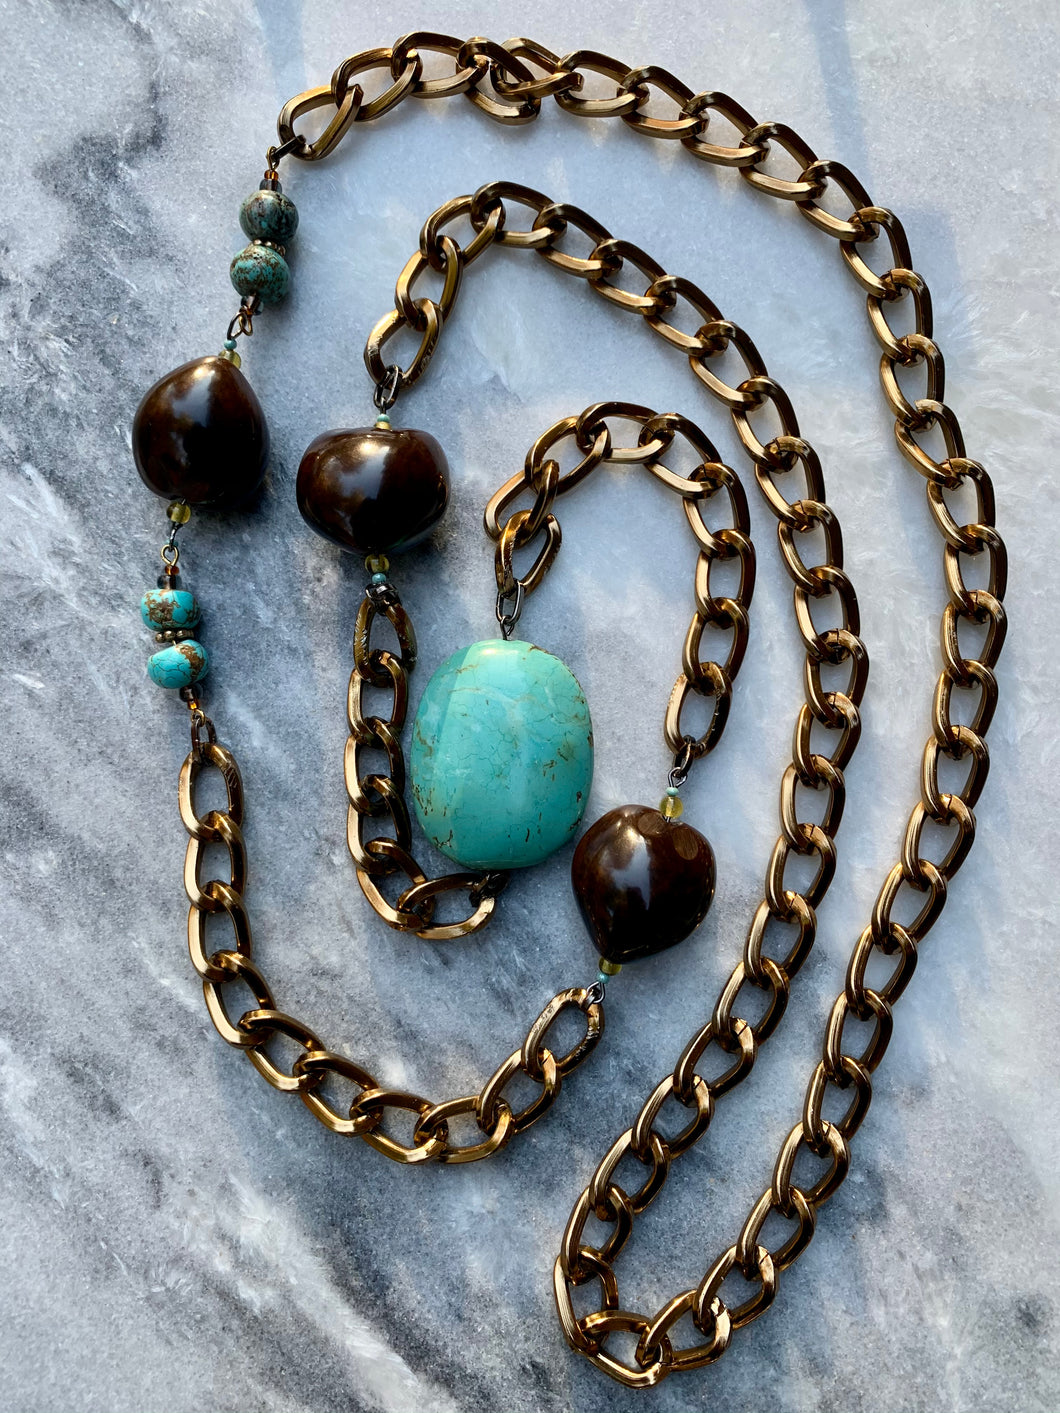 Howlite Turquoise, Brown Nut Shell, Antique Brass Plated Chain